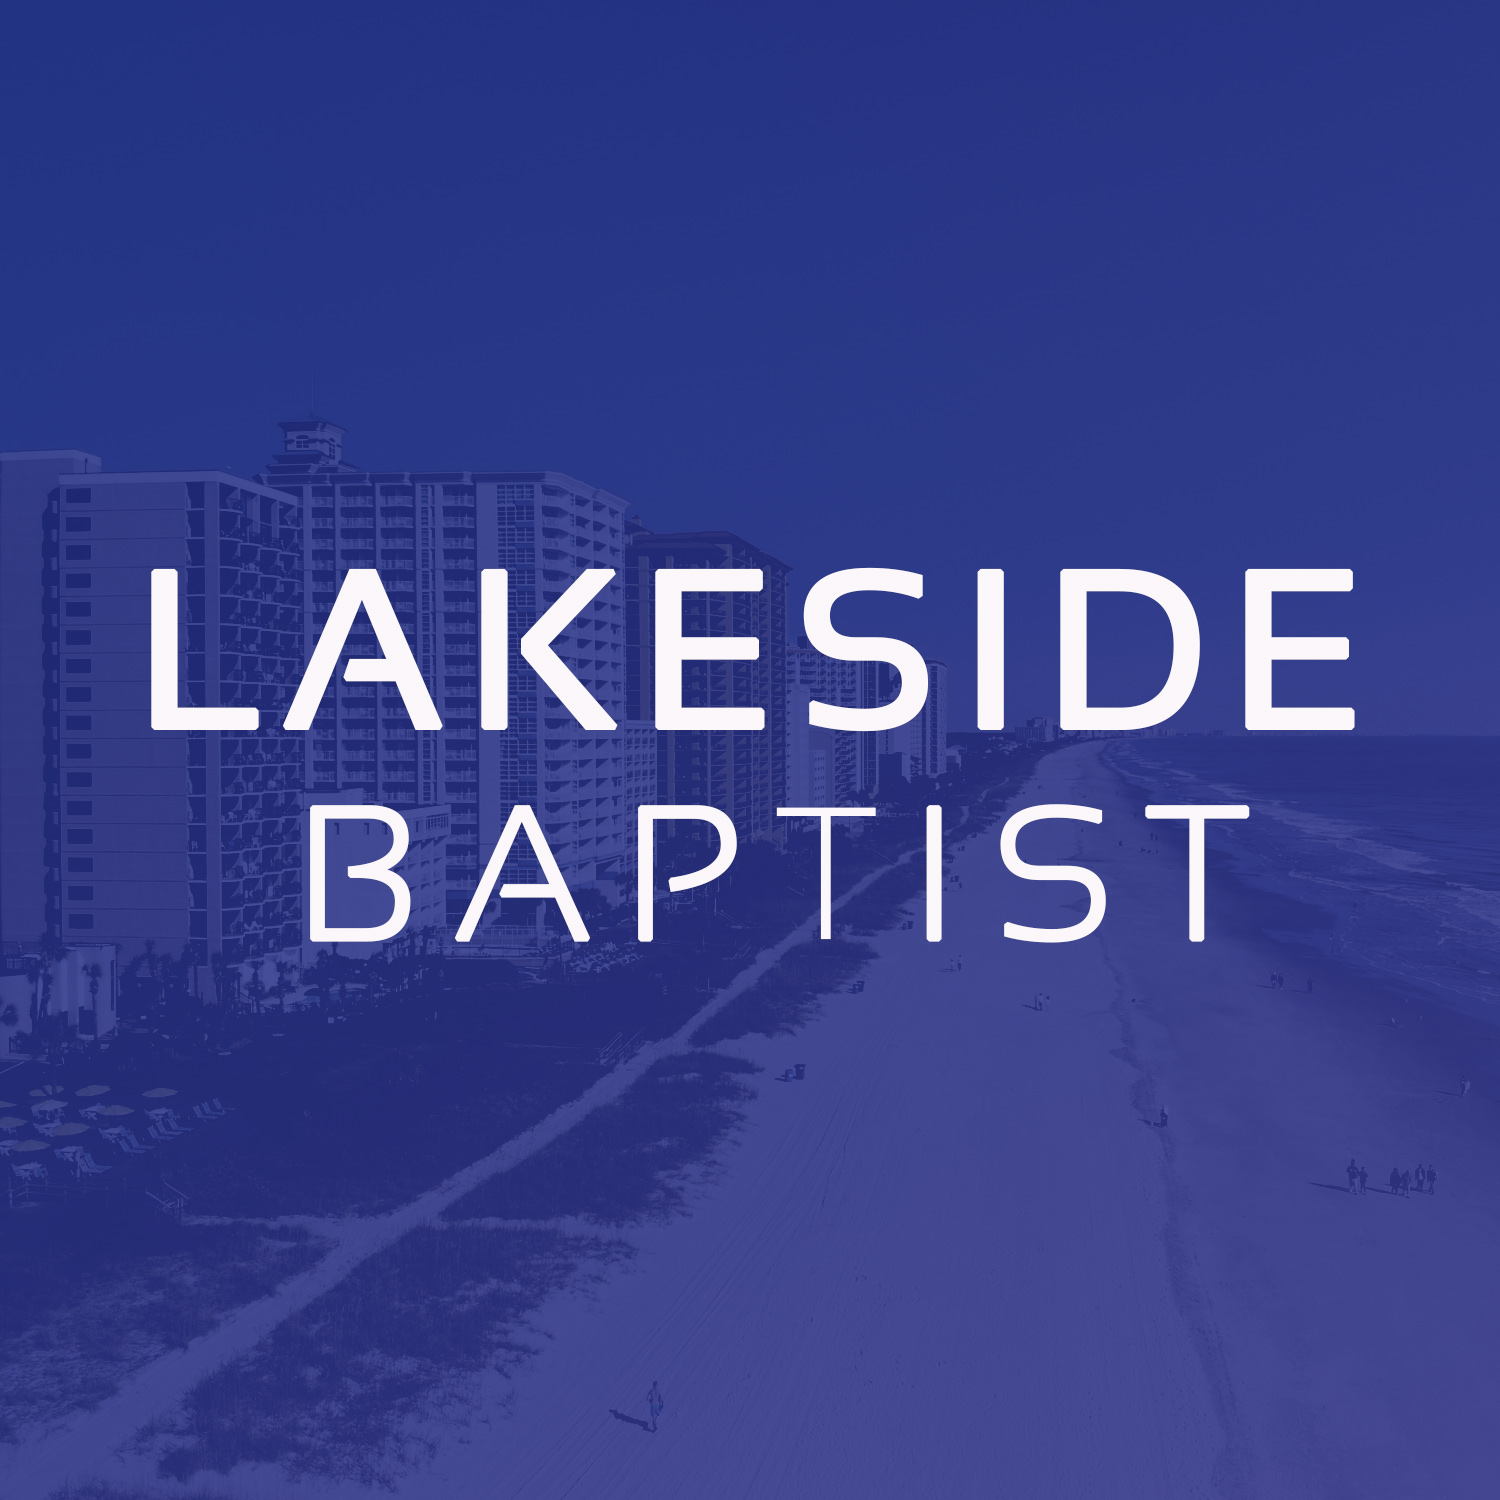 Lakeside Baptist Church is a bit of a revitalizing church with a presence in their community dating back to 1948. Michael Craigs shepherds this coastal congregation located near sunny North Myrtle Beach in South Carolina.